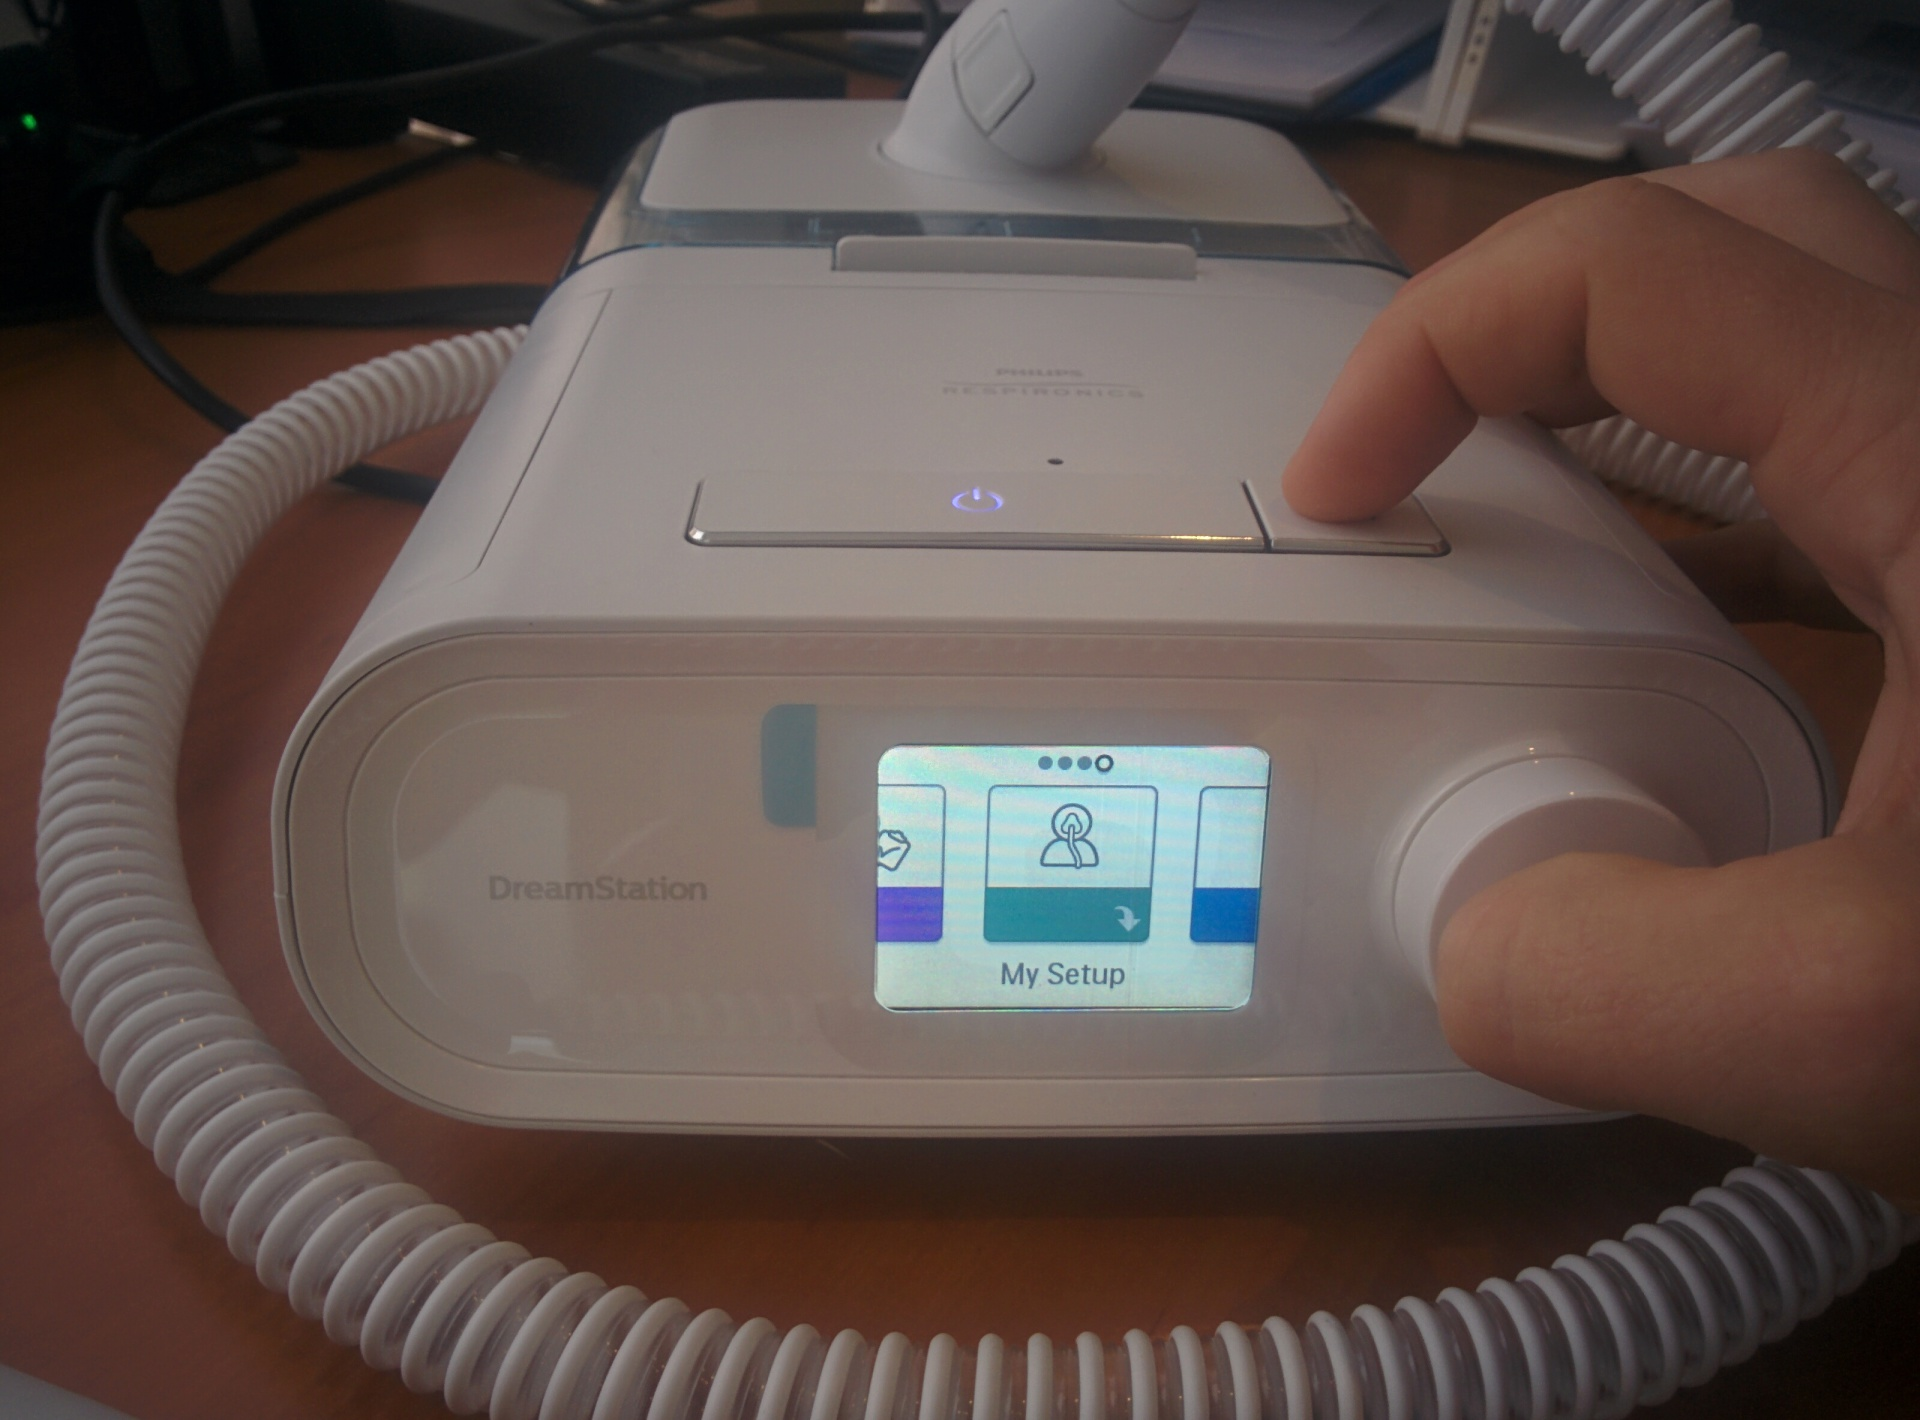 Respironics Dreamstation Autoset In Depth Review Cpap Reviews